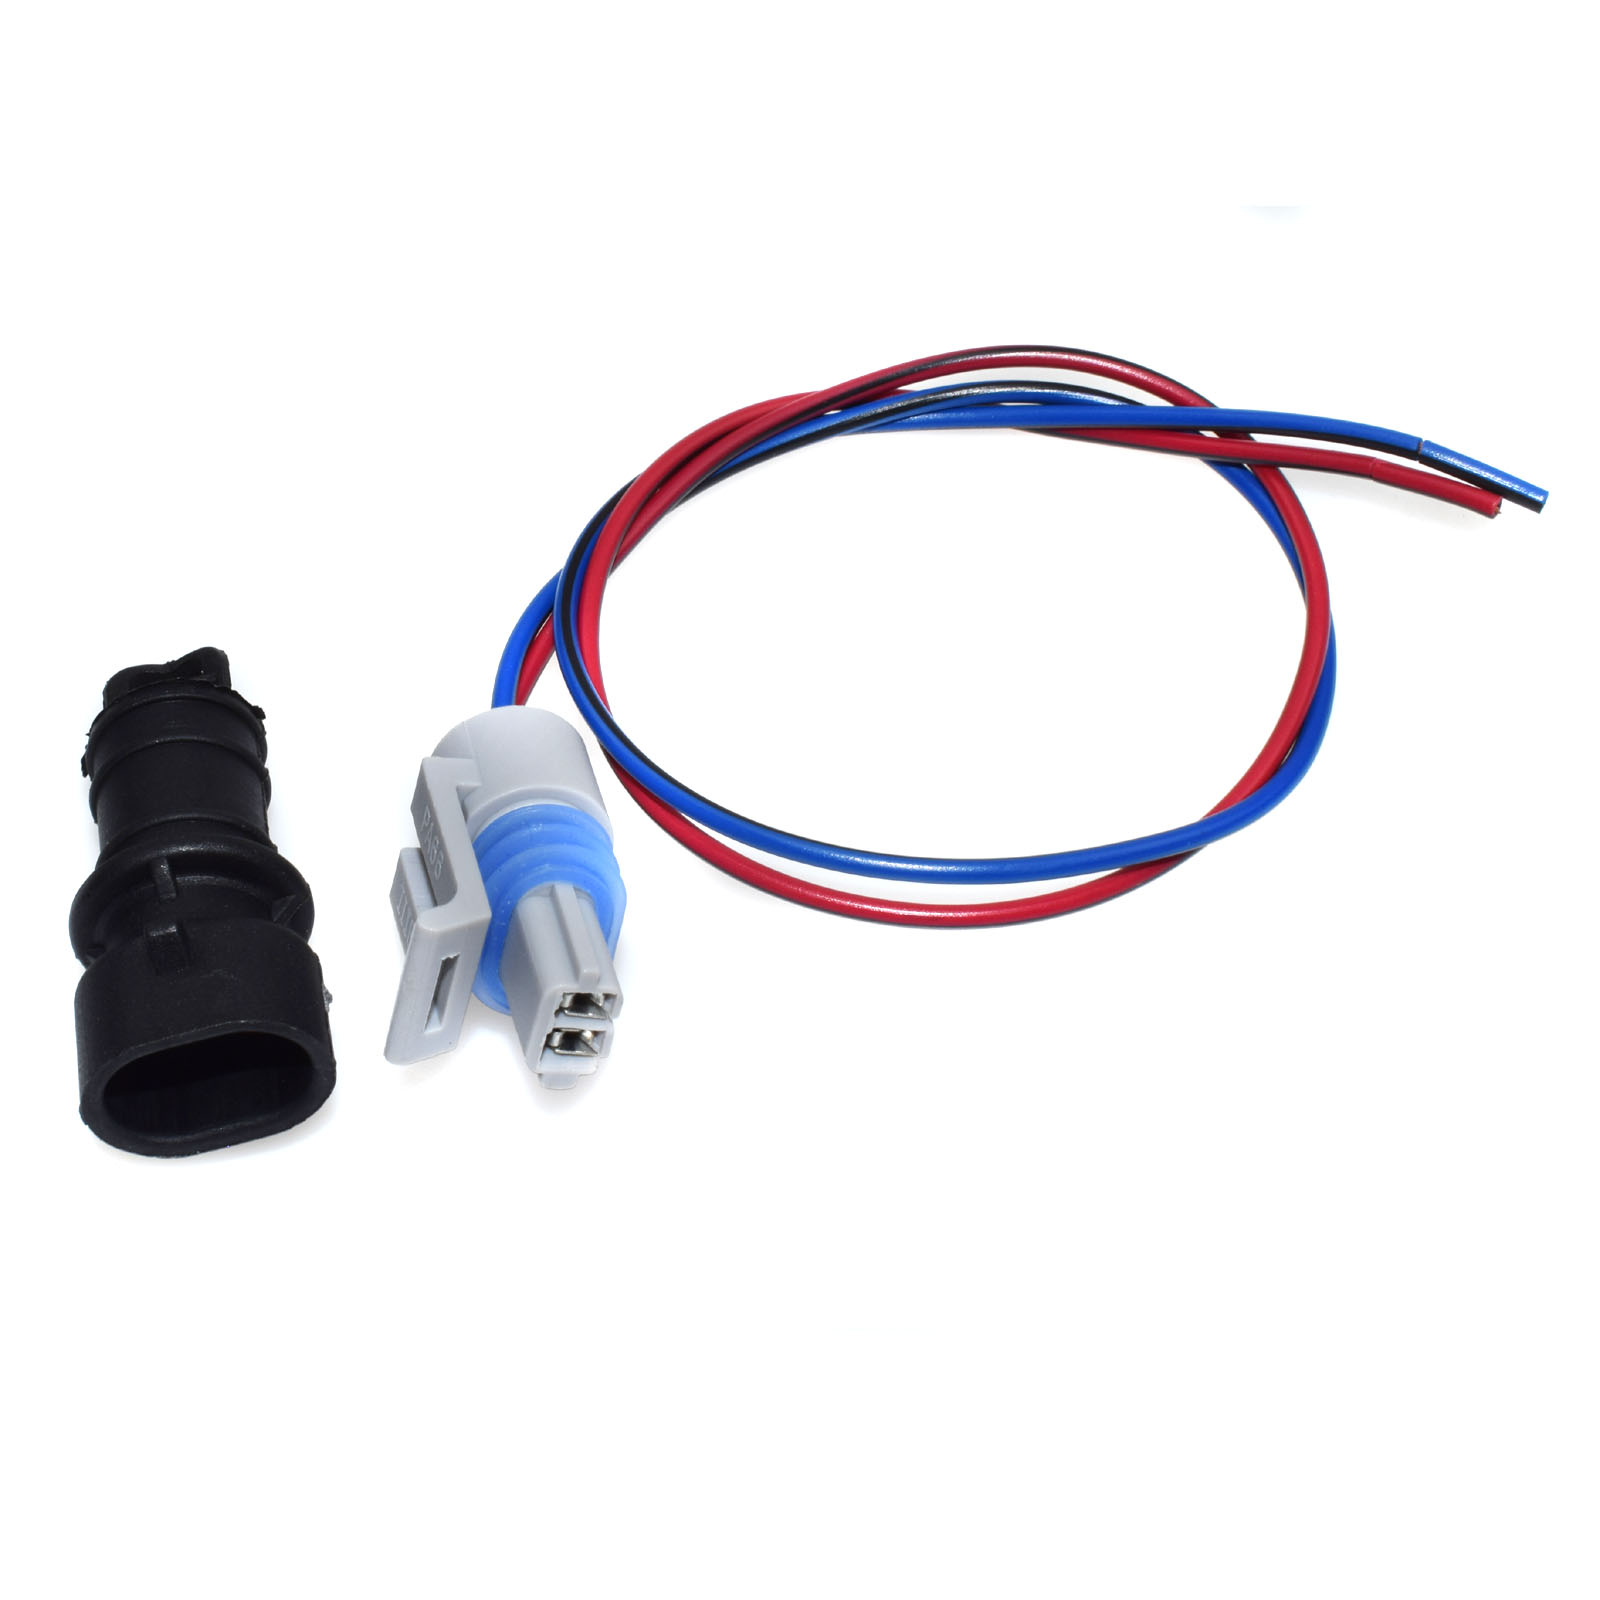 Speed Sensor Pigtail For 2004-2006 Pontiac GTO; Vehicle Speed Sensor Connector